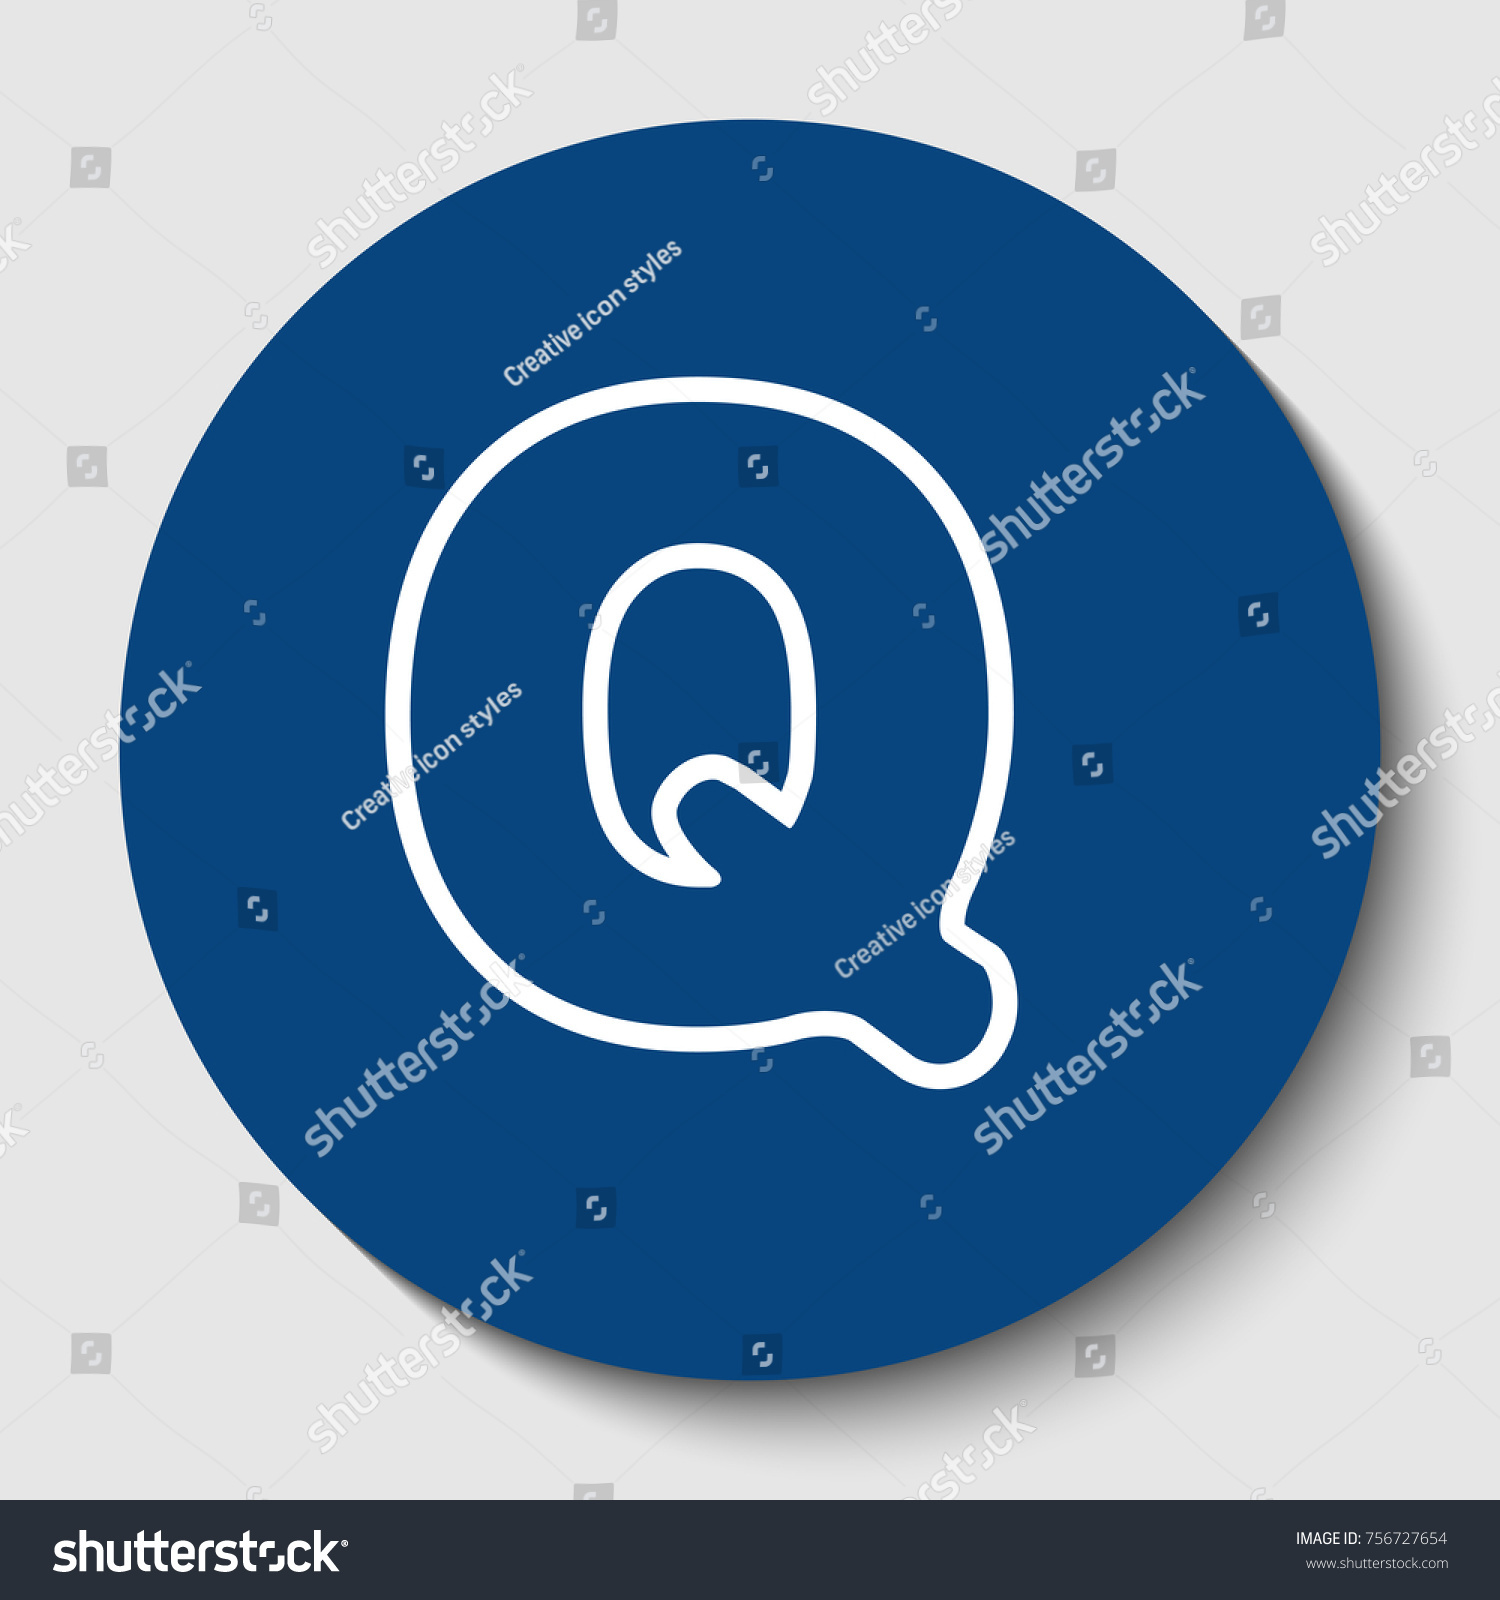 Letter Q sign design template element. Vector. White contour icon in dark  cerulean circle